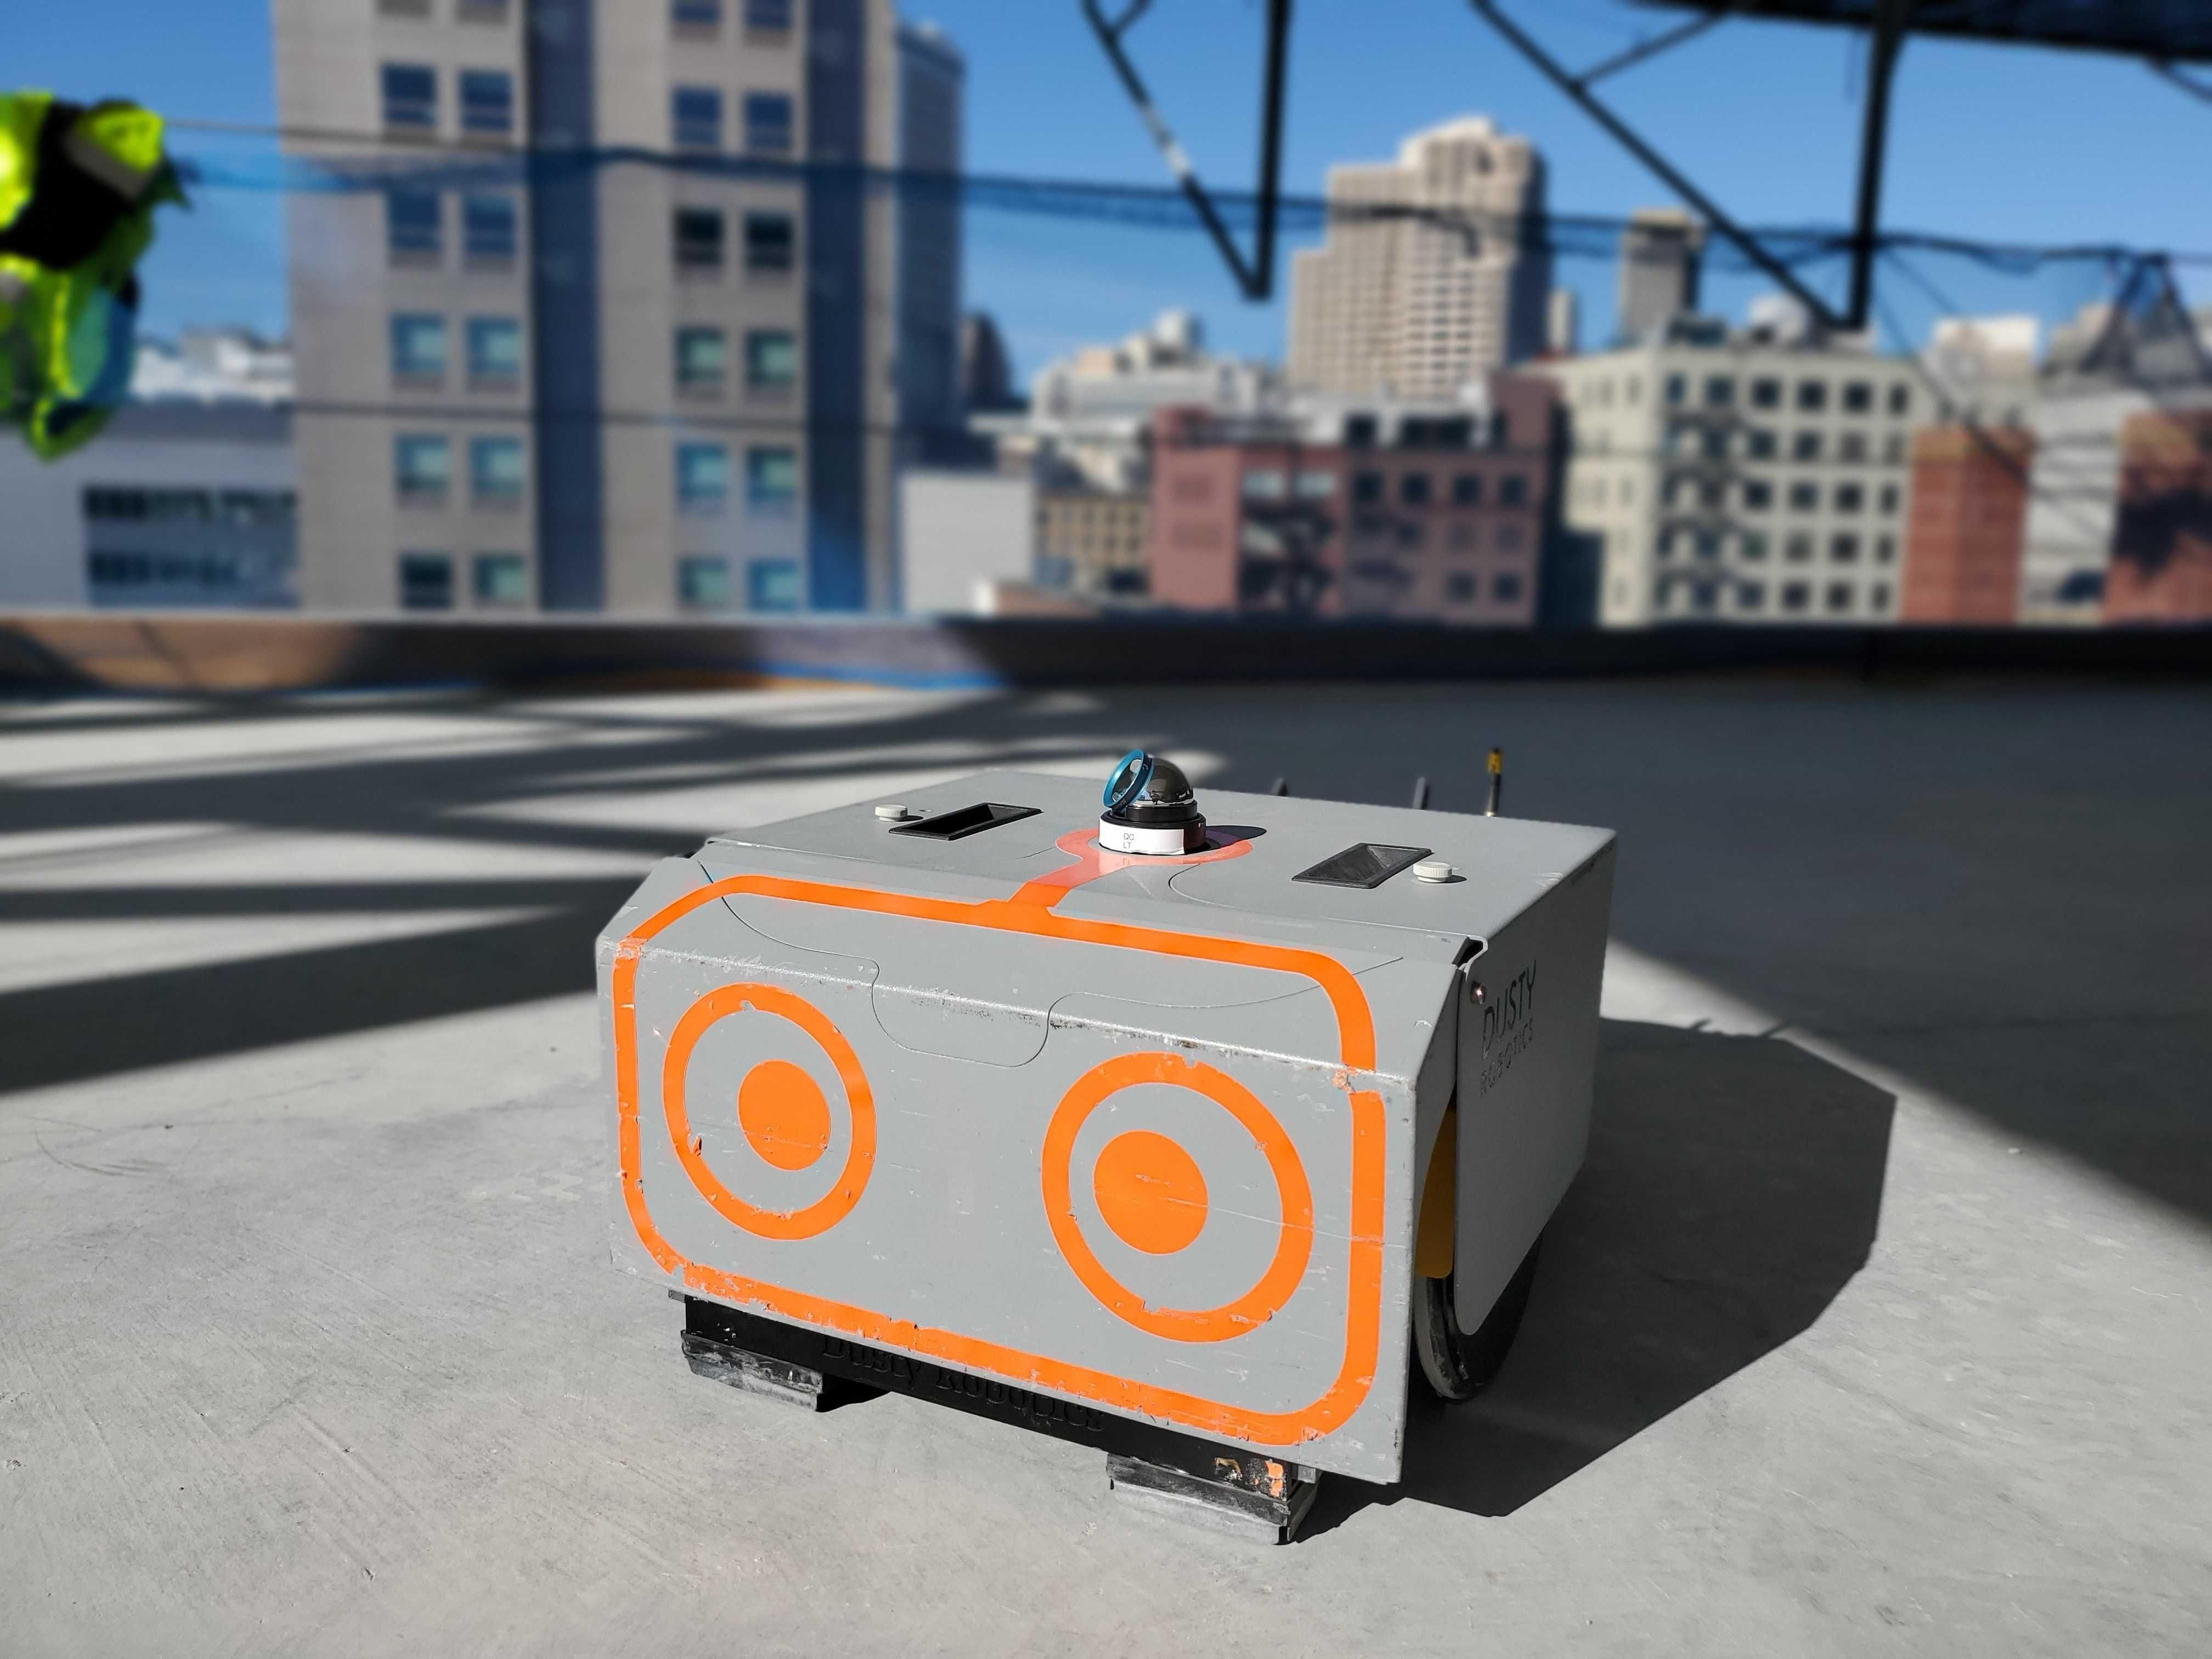 A small rectangular robot with large orange cartoon eyes on a construction site